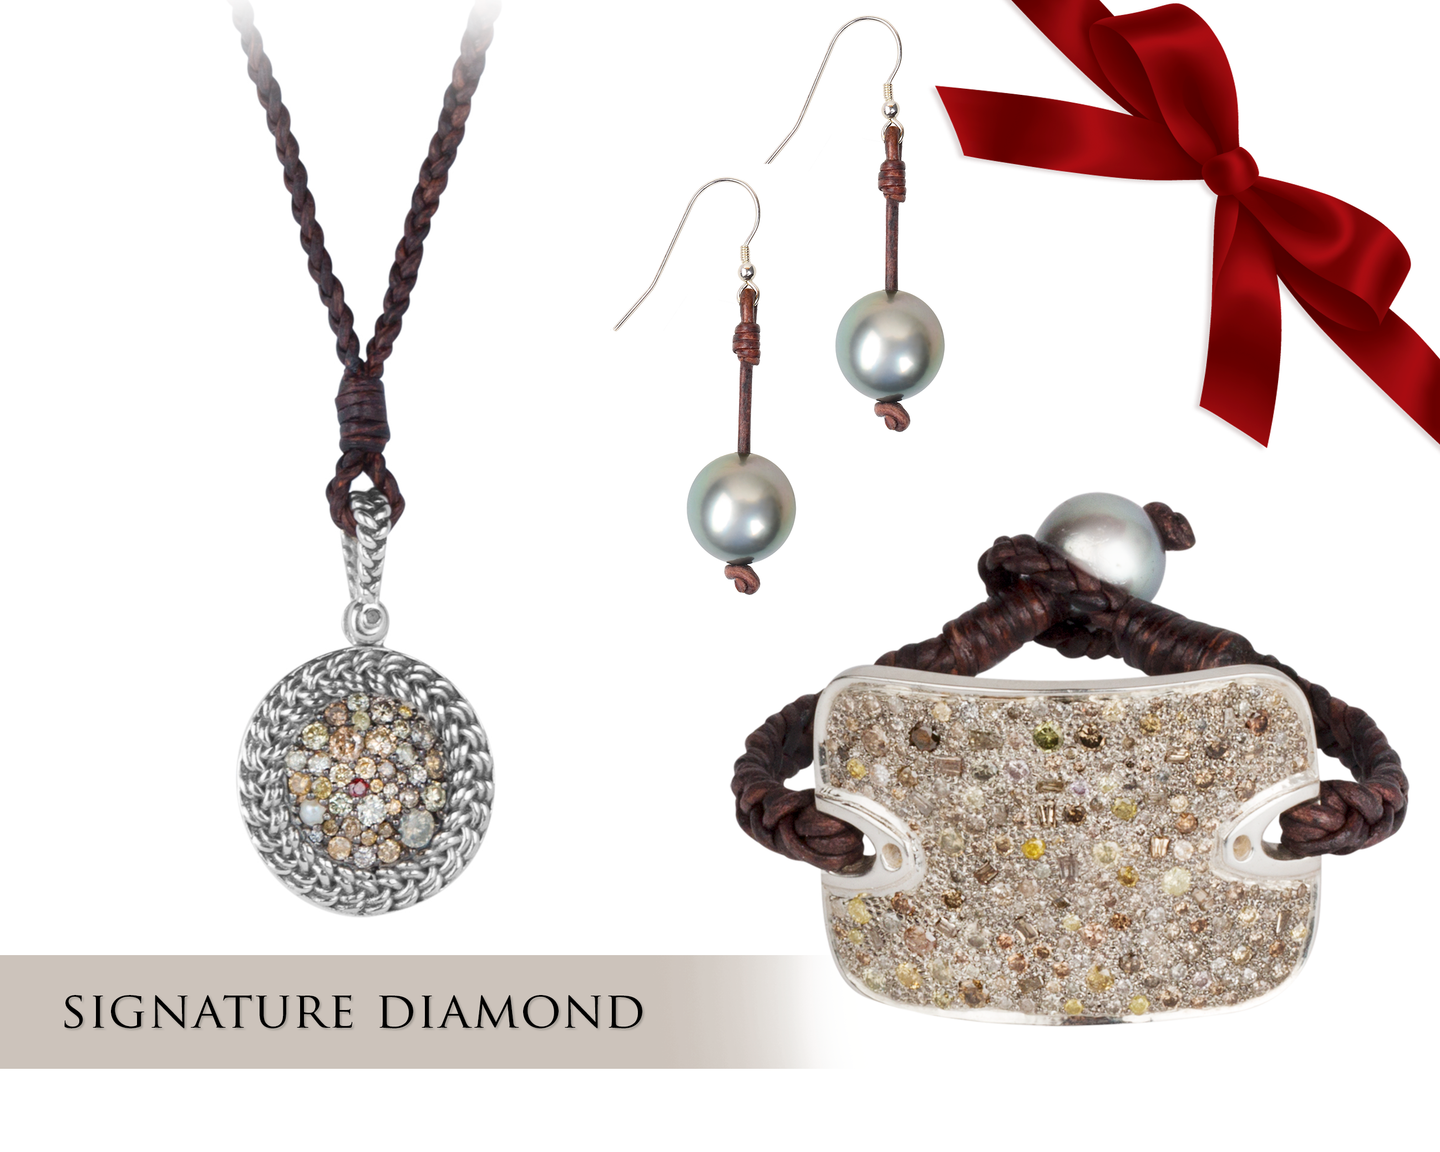 Signature Diamond Gift Set